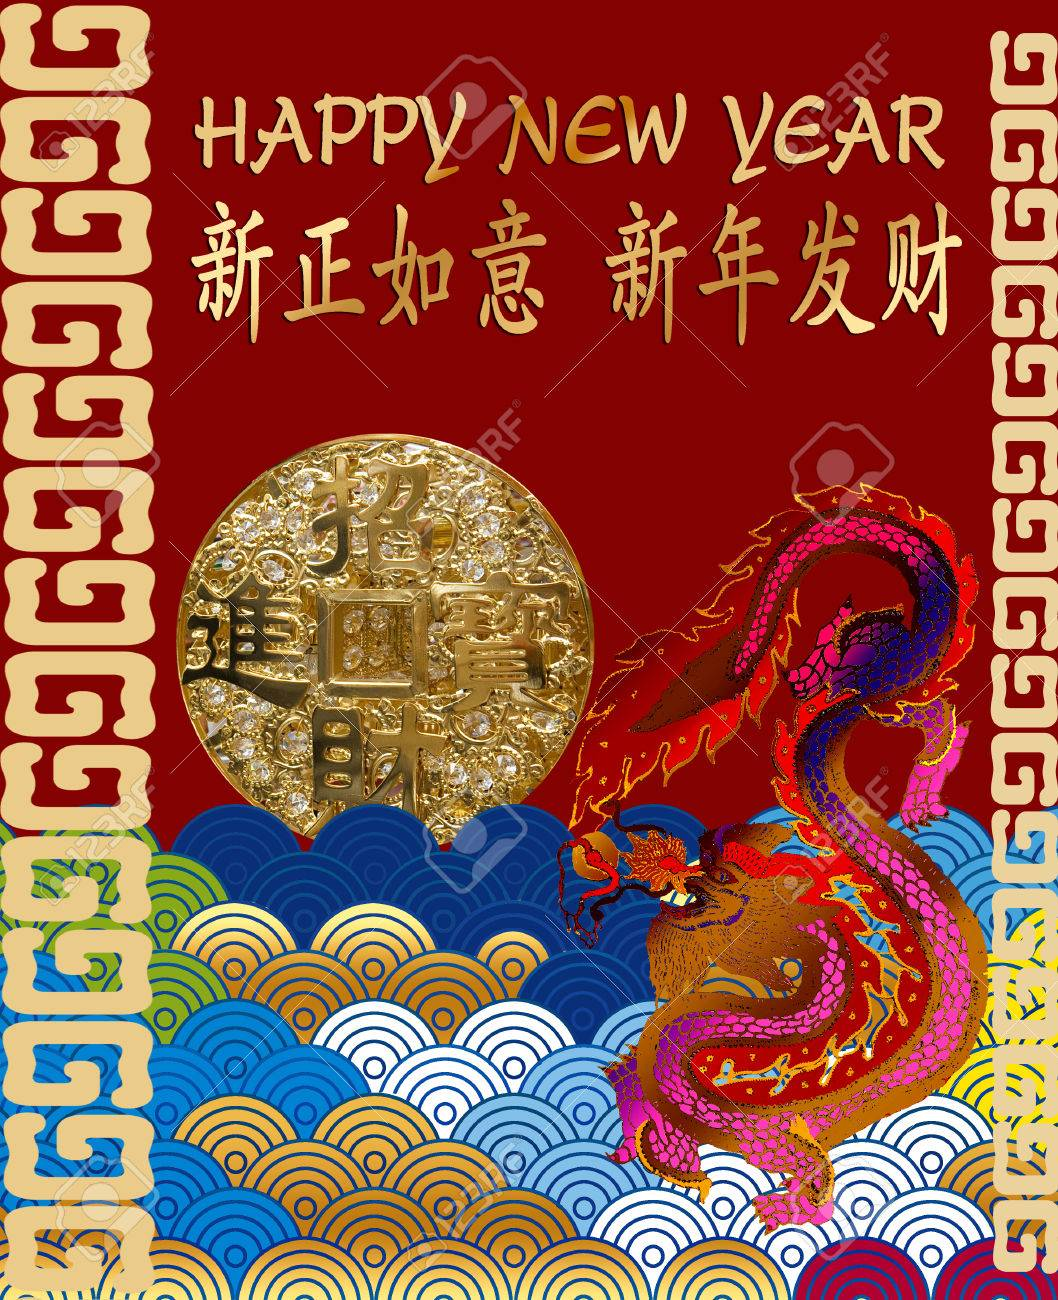 Chinese New Year Card Gold Dragon On Gold Wave Chinese Wording ...